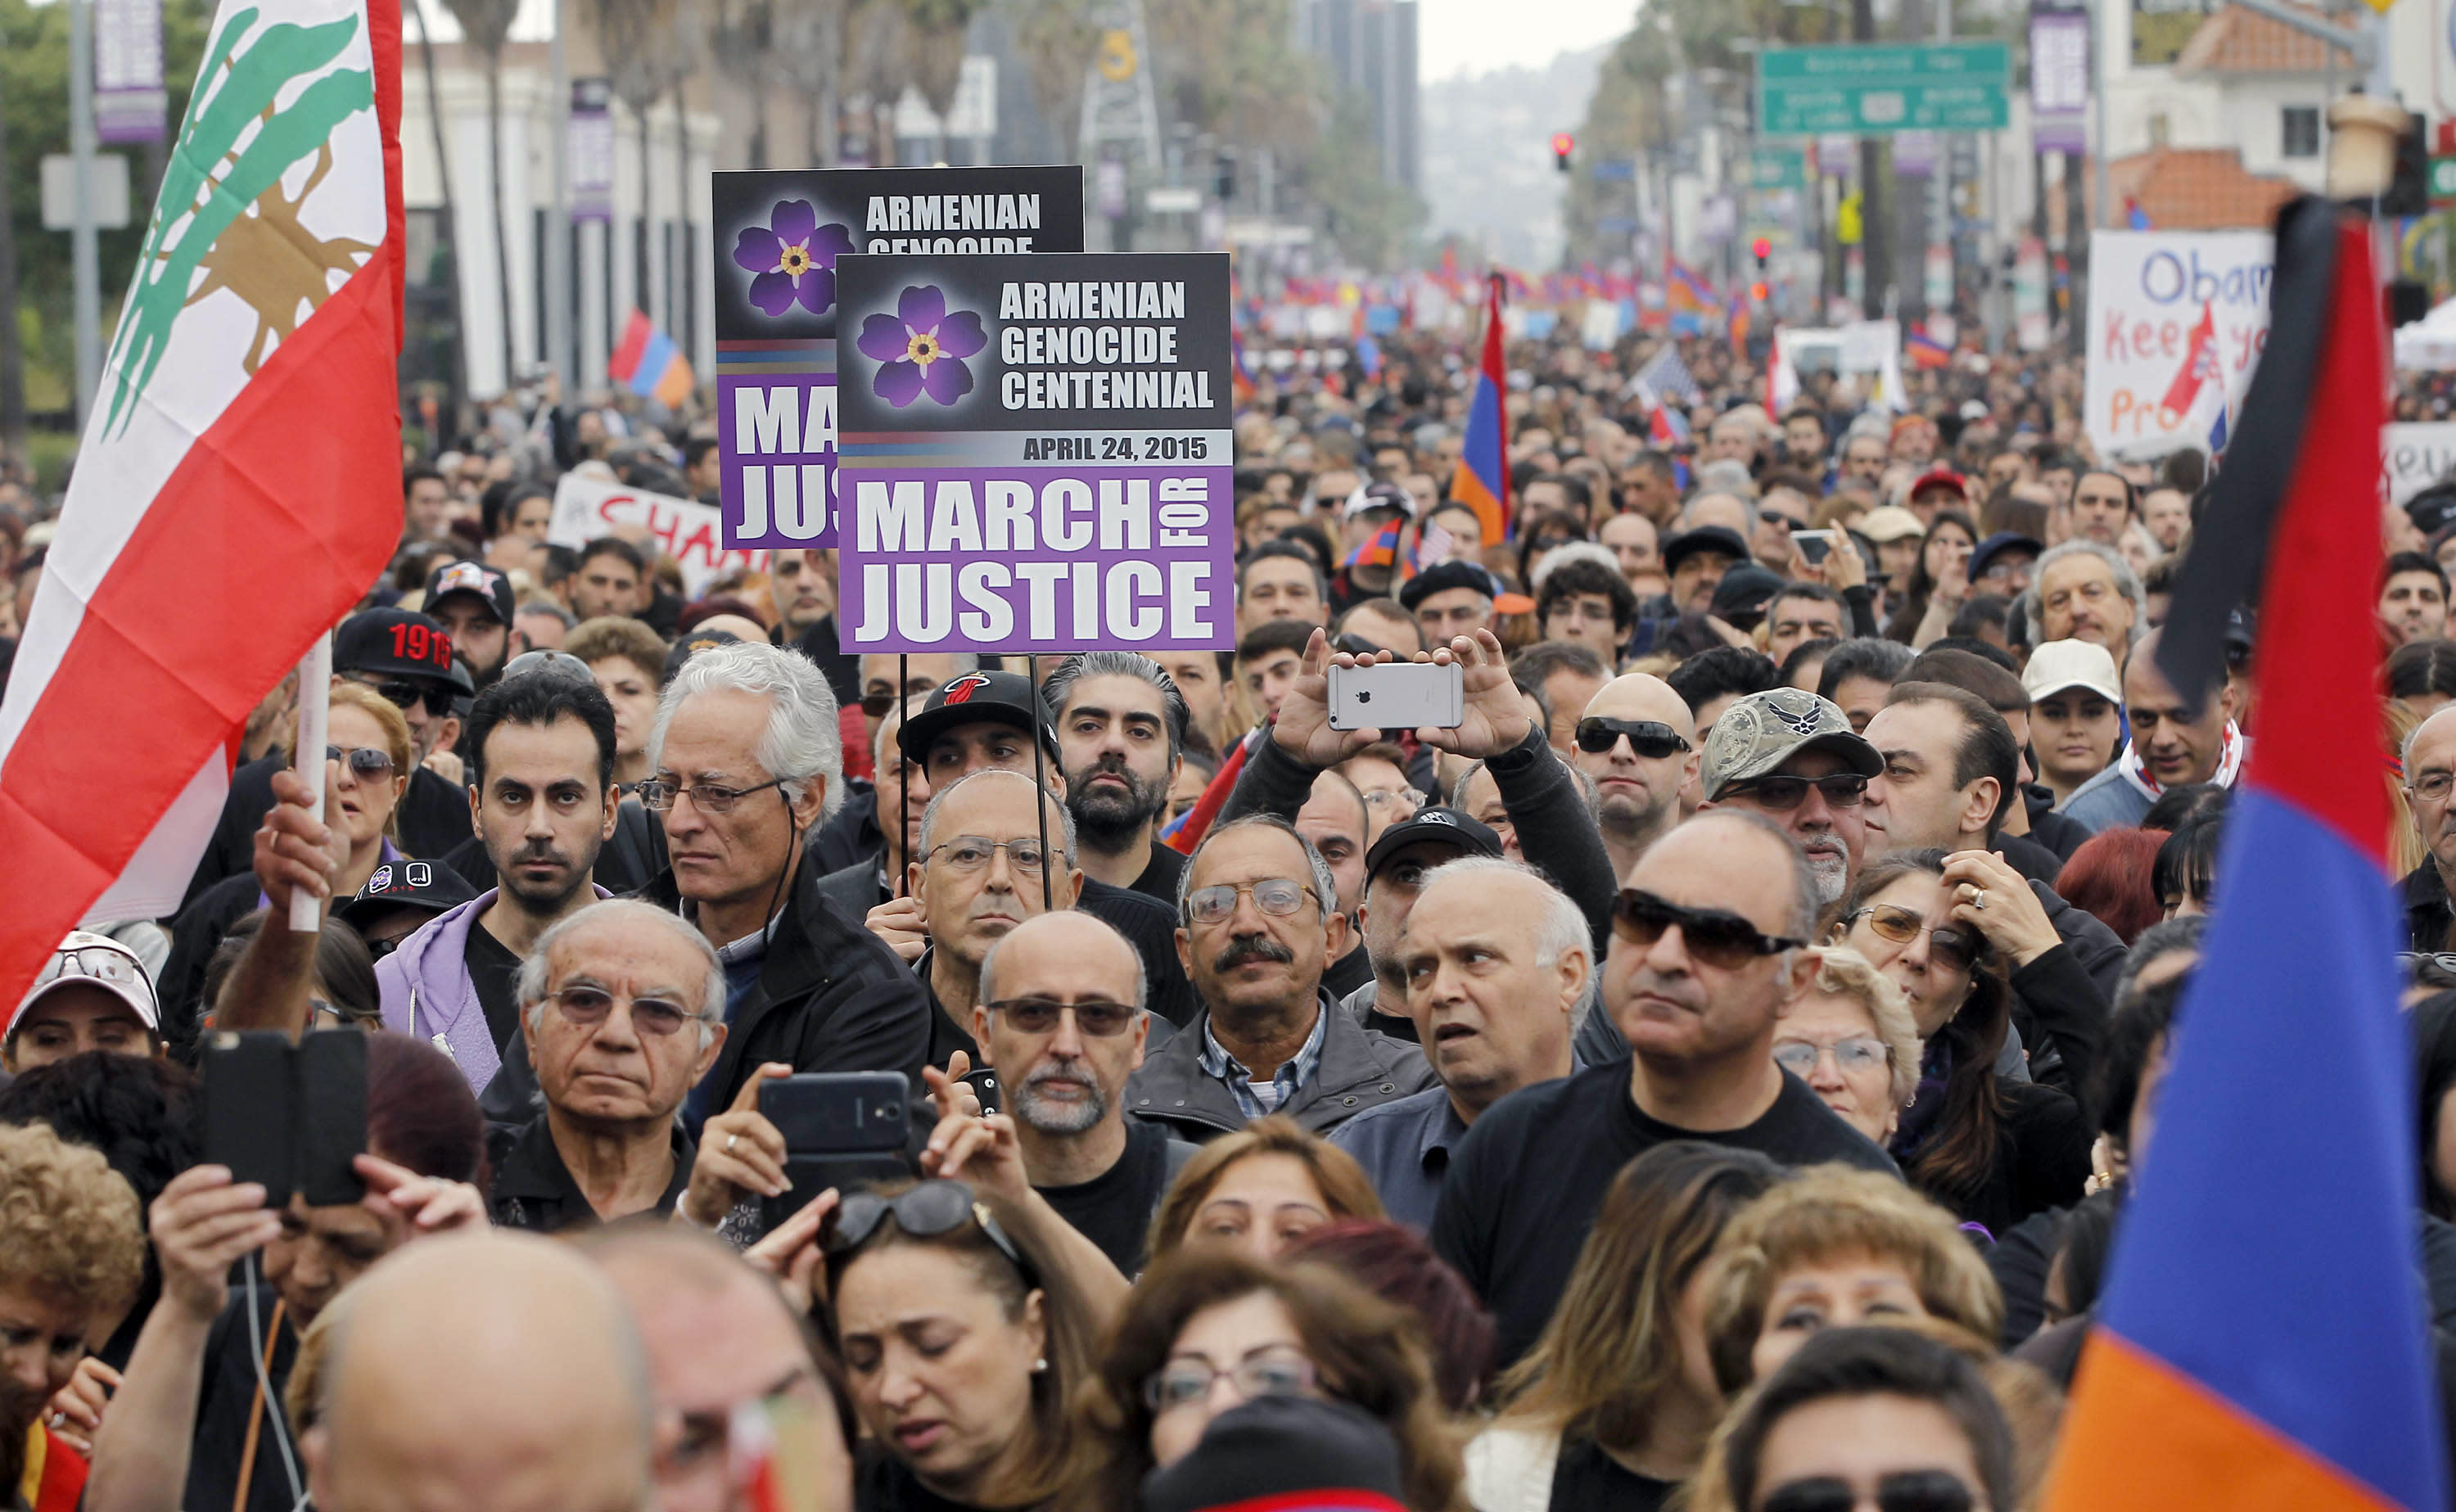 Huge Los Angeles march commemorates Armenian killings